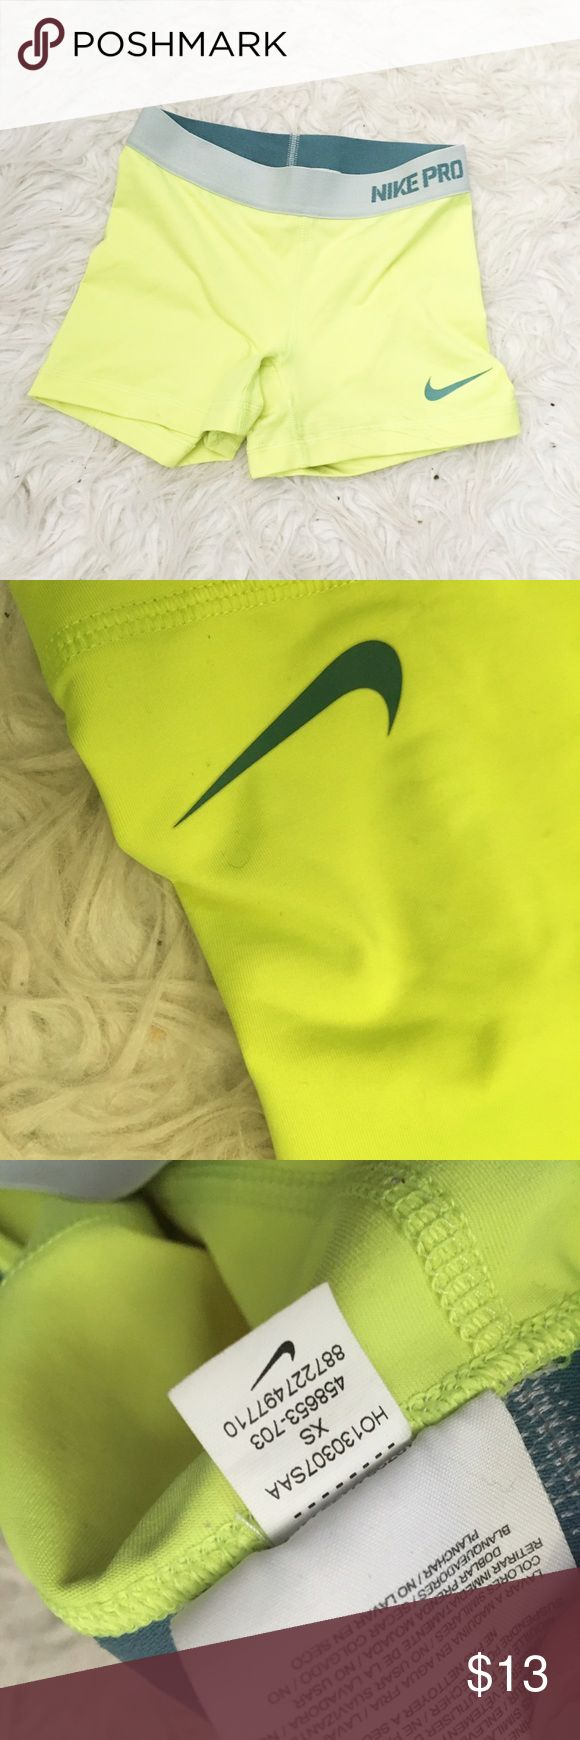 neon yellow nike pros 25% off of bundles! in great condition, super cute! Nike Shorts